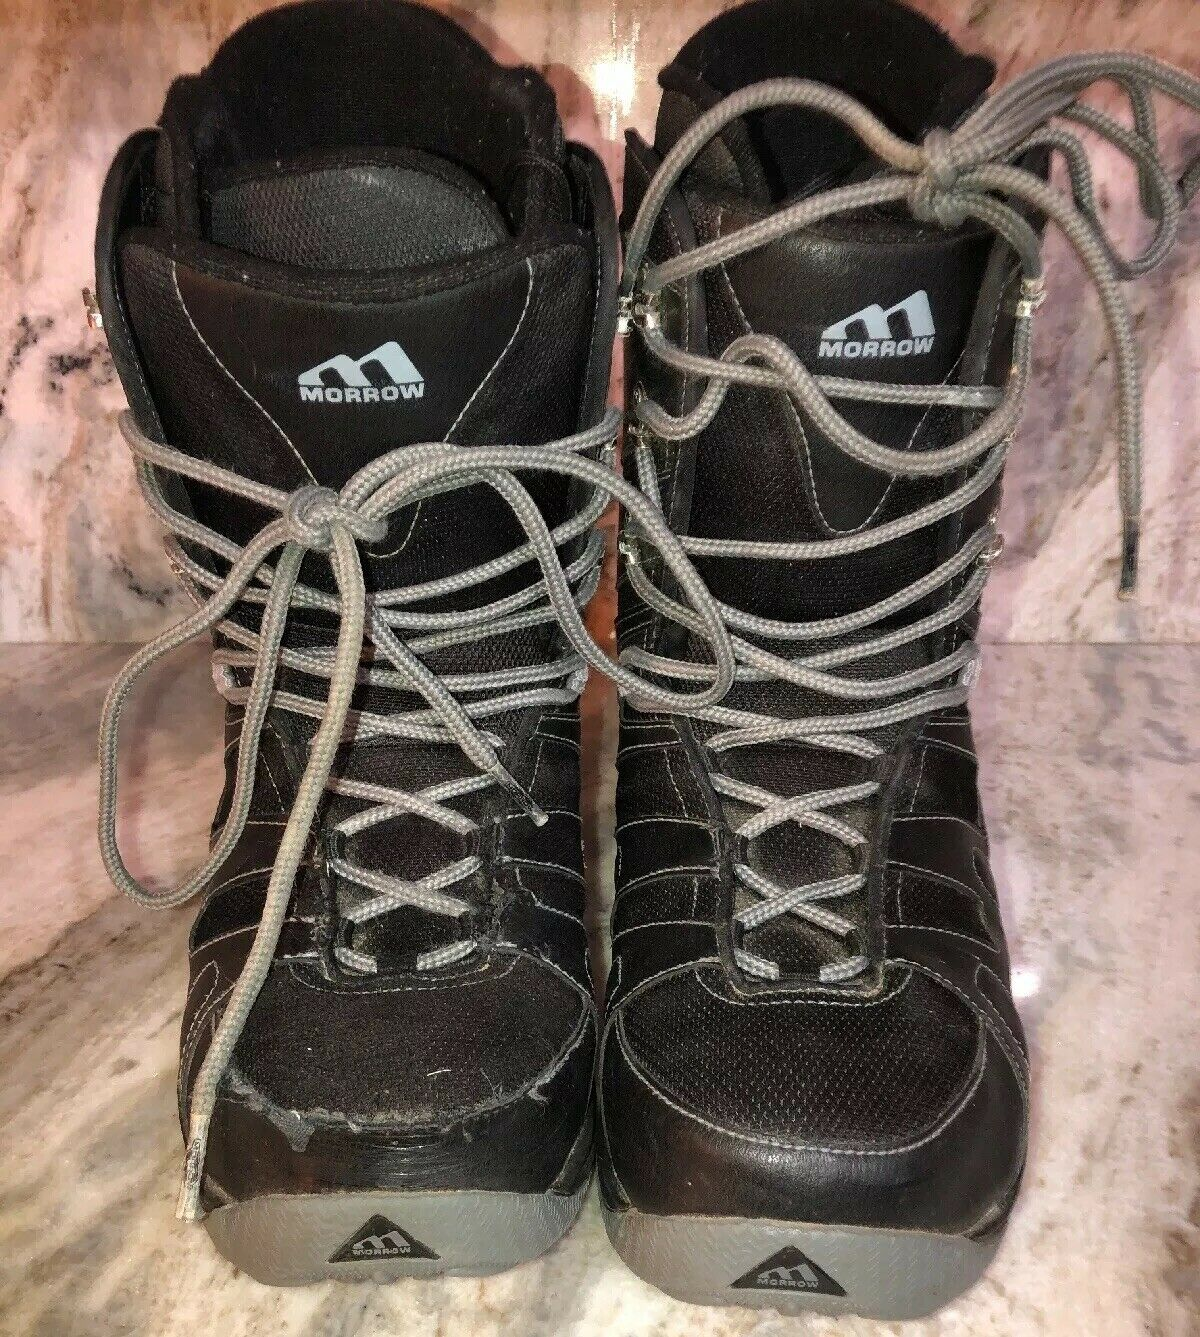 MORROW RAIL SNOWBOARDING Boots Mens Size  US 10 Eur 43.5-RARE VINTAGE-SHIP N 24HR  first-class quality